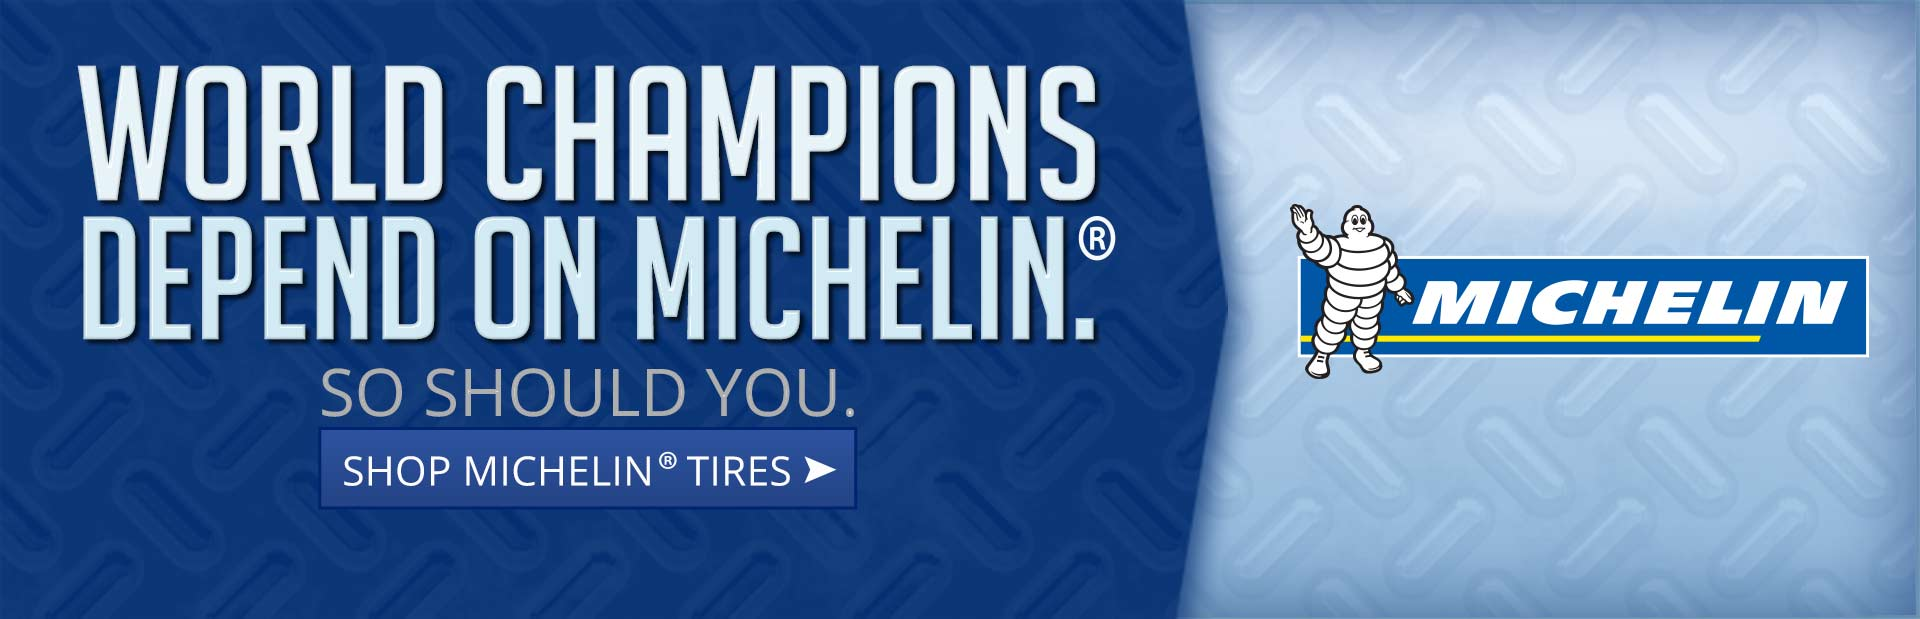 World champions depend on Michelin®. So should you. Click here to shop Michelin® tires.